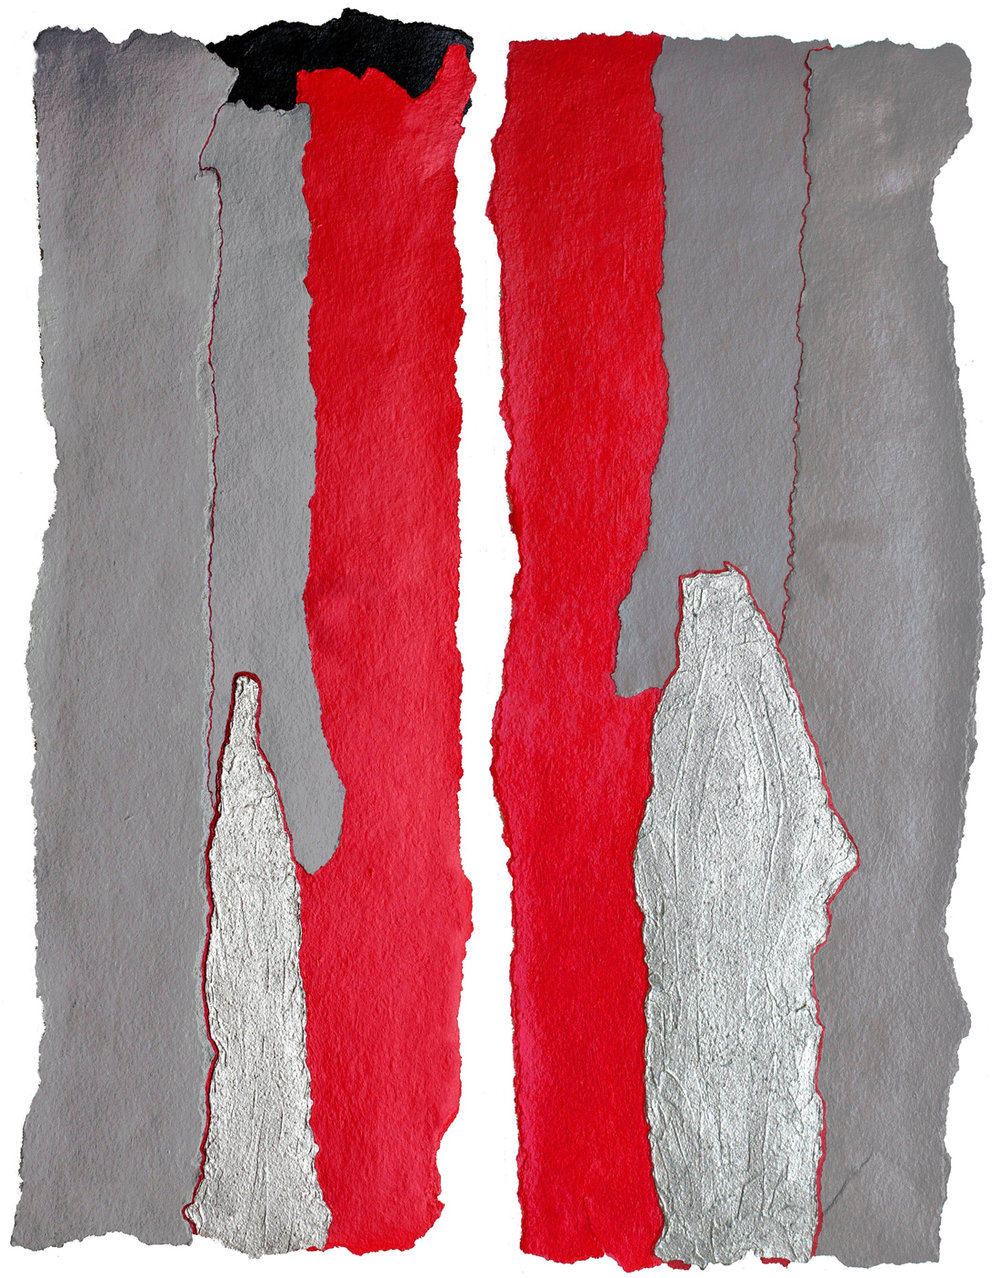 Red & Grey  Diptych